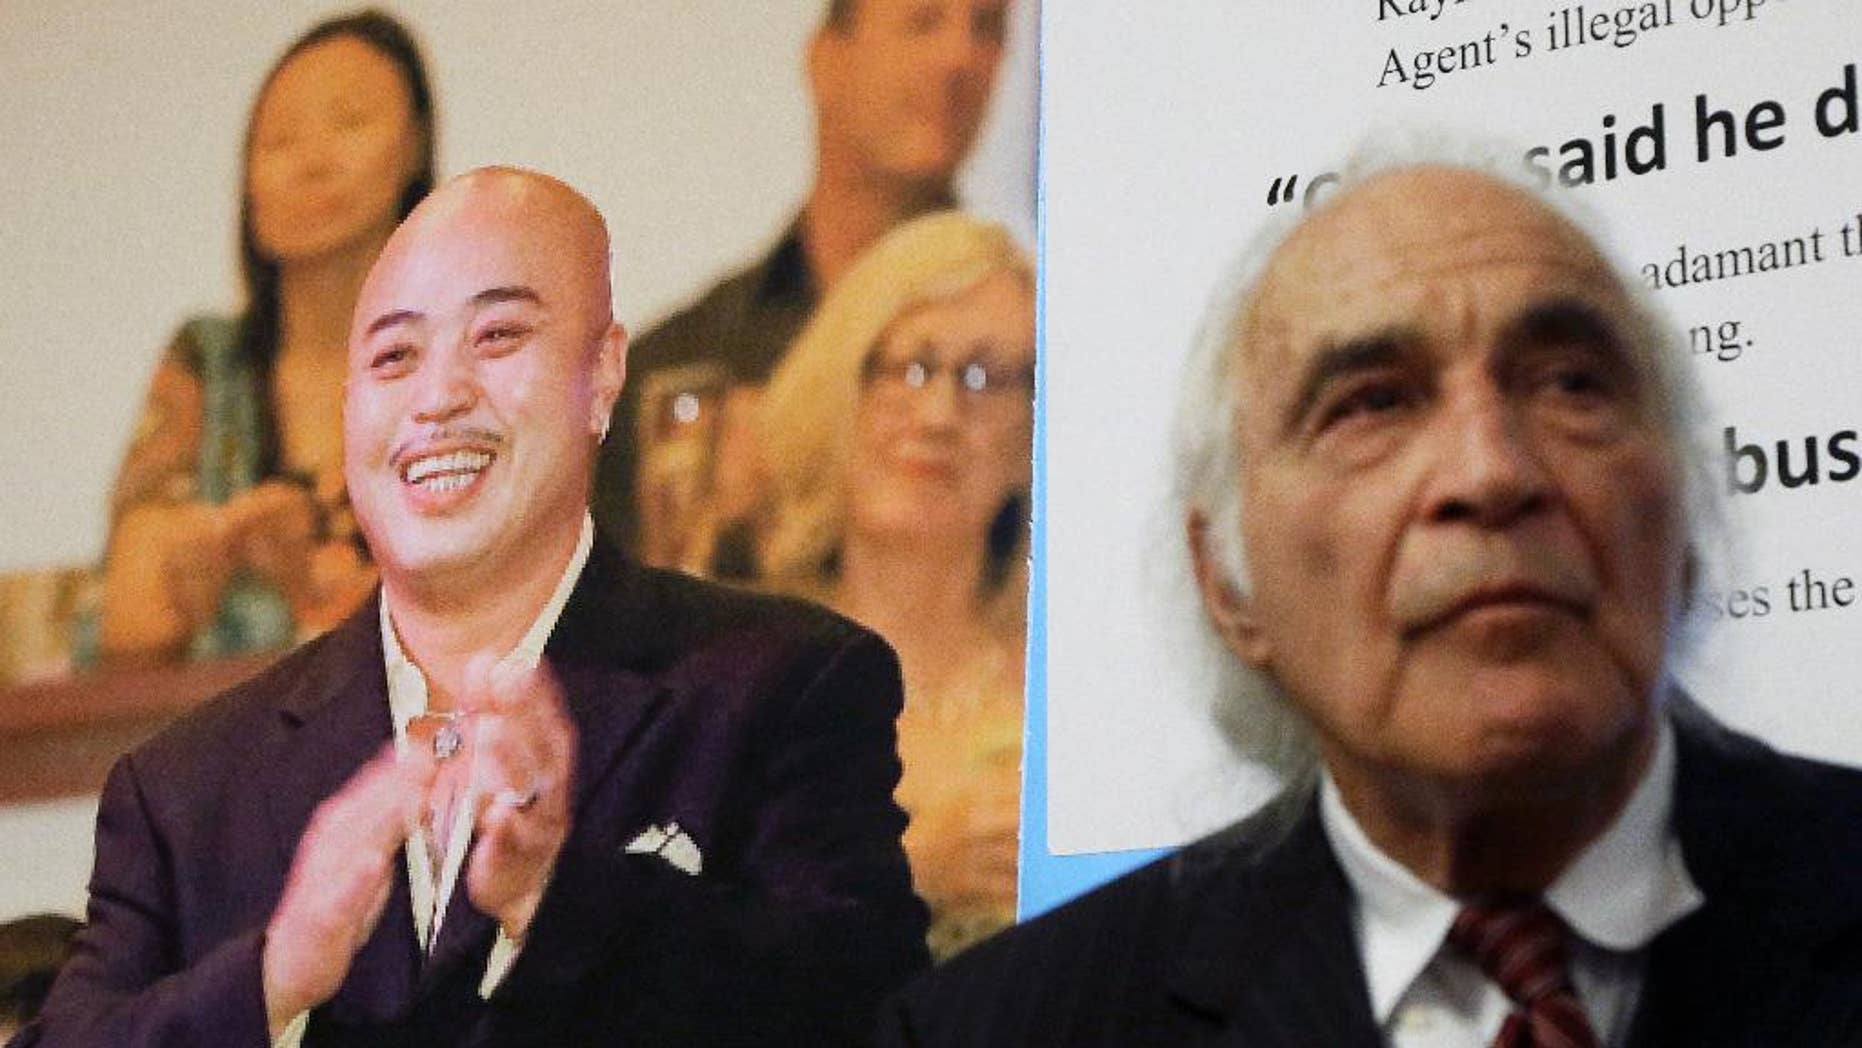 """FILE - In this April 10, 2014 file photo, Tony Serra, right, an attorney for Raymond """"ShrimpBoy"""" Chow, pictured at left, listens to speakers at a news conference in San Francisco. Chow, a dapper former San Francisco gang leader who portrayed himself as a reformed criminal, was the focus of a lengthy organized crime investigation in Chinatown that ended up snaring a corrupt California senator and more than two dozen others. Closing arguments are expected Monday, Jan. 4, 2016, in the racketeering and murder case against Chow. (AP Photo/Jeff Chiu, File)"""